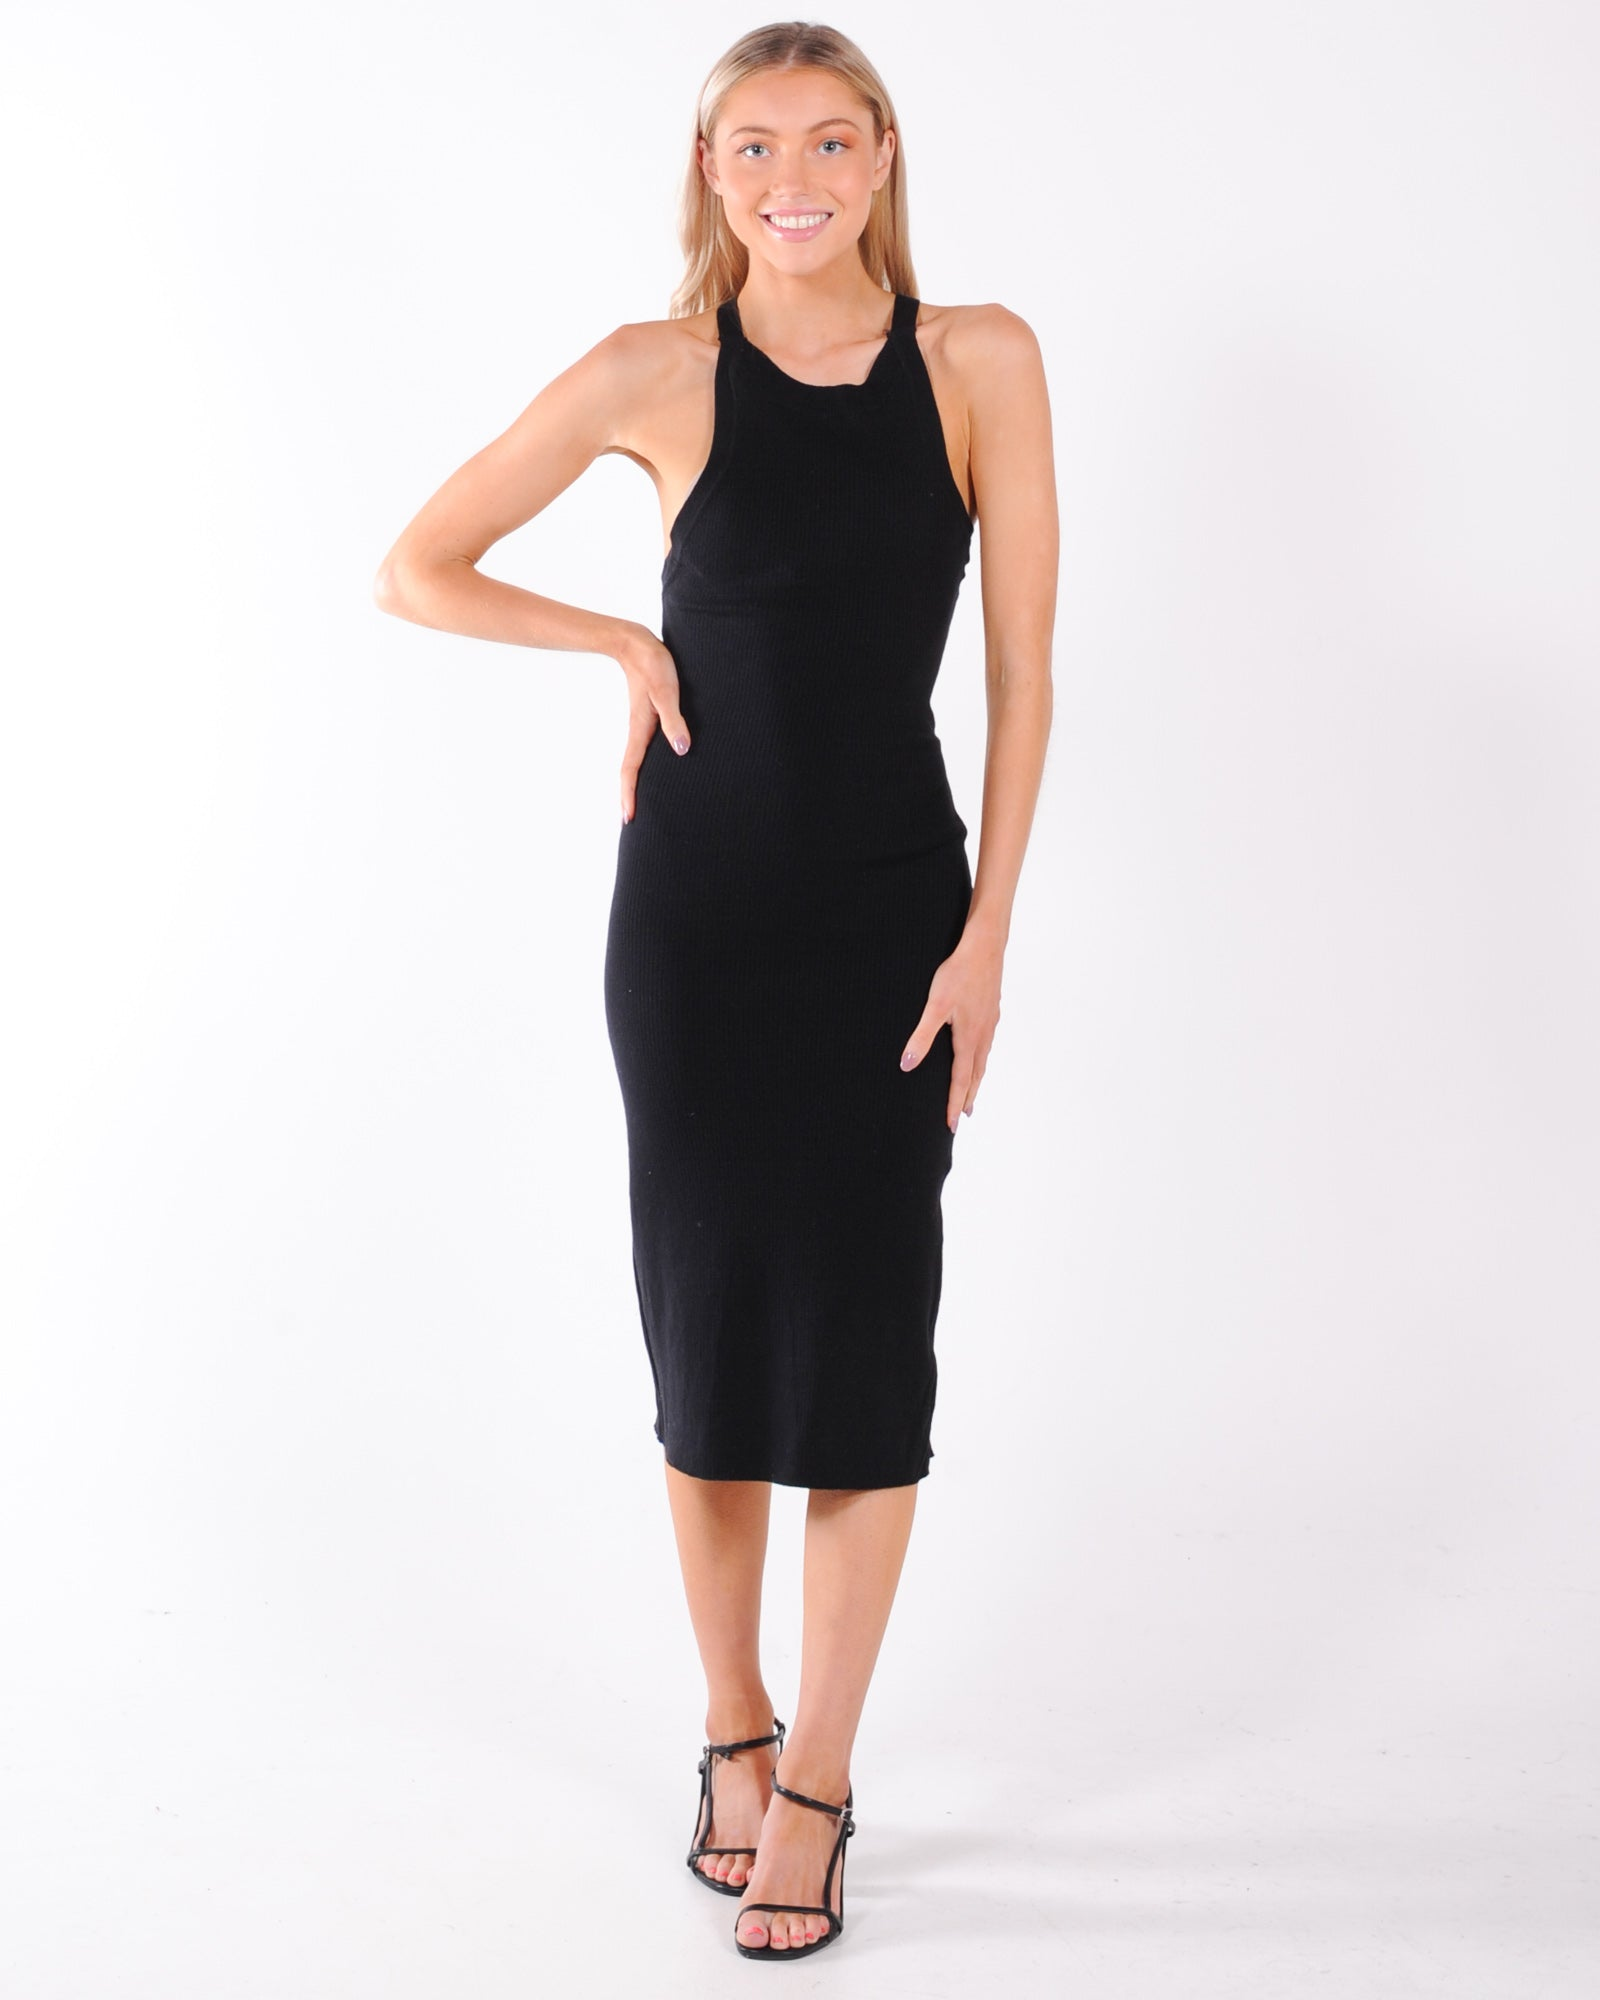 Sndys Lucid Knit Dress - Black